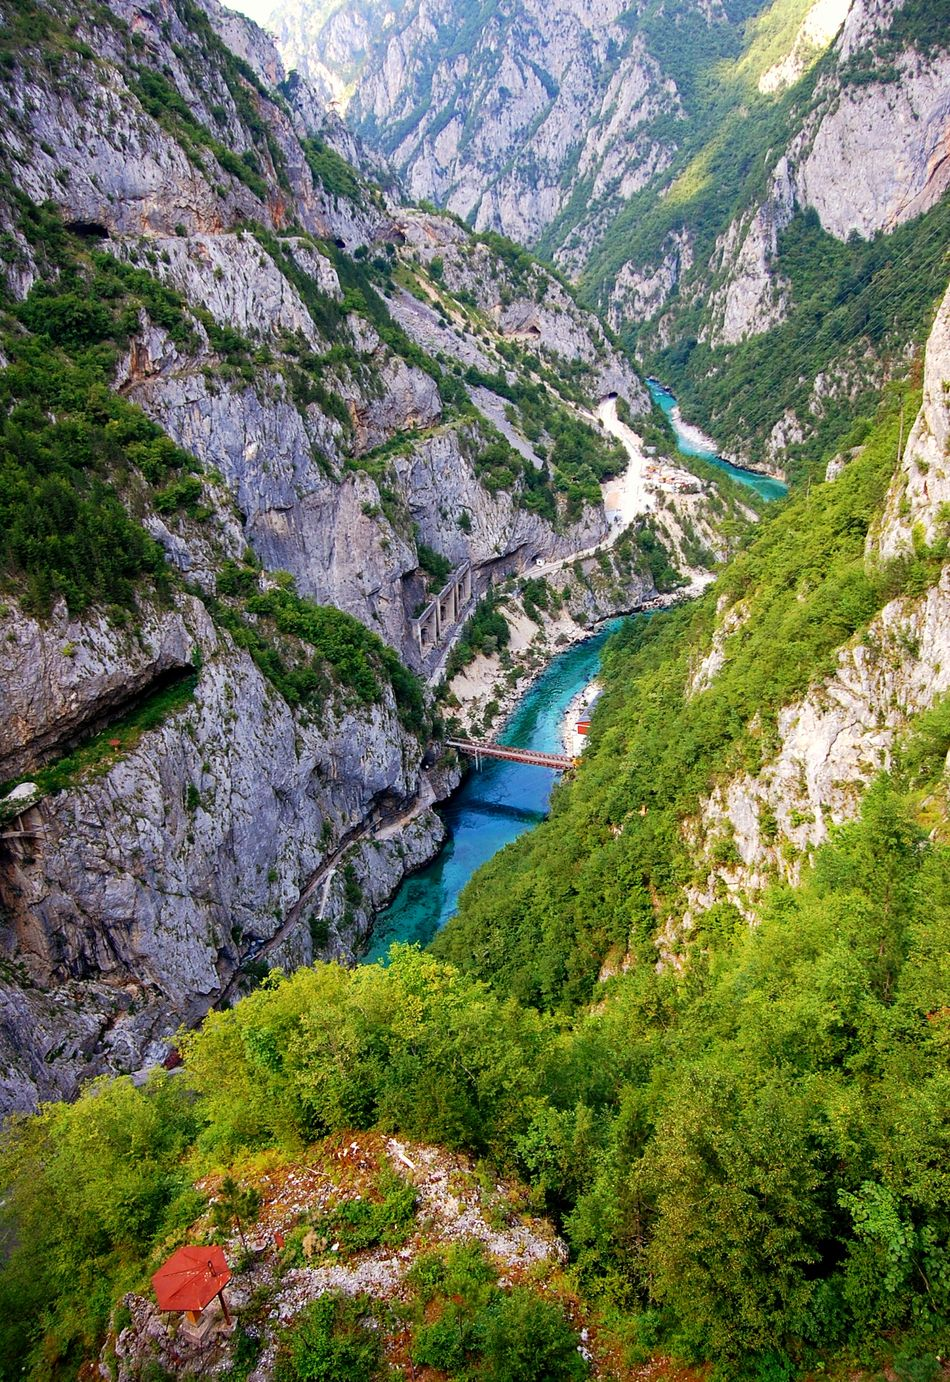 Beautiful Nature EyeEm Nature Lover Montenegro Mountain Mountains Nature Nature Photography Nature_collection Naturelovers Nikon Nikonphotography Piva River Sunshine Travel Vacation